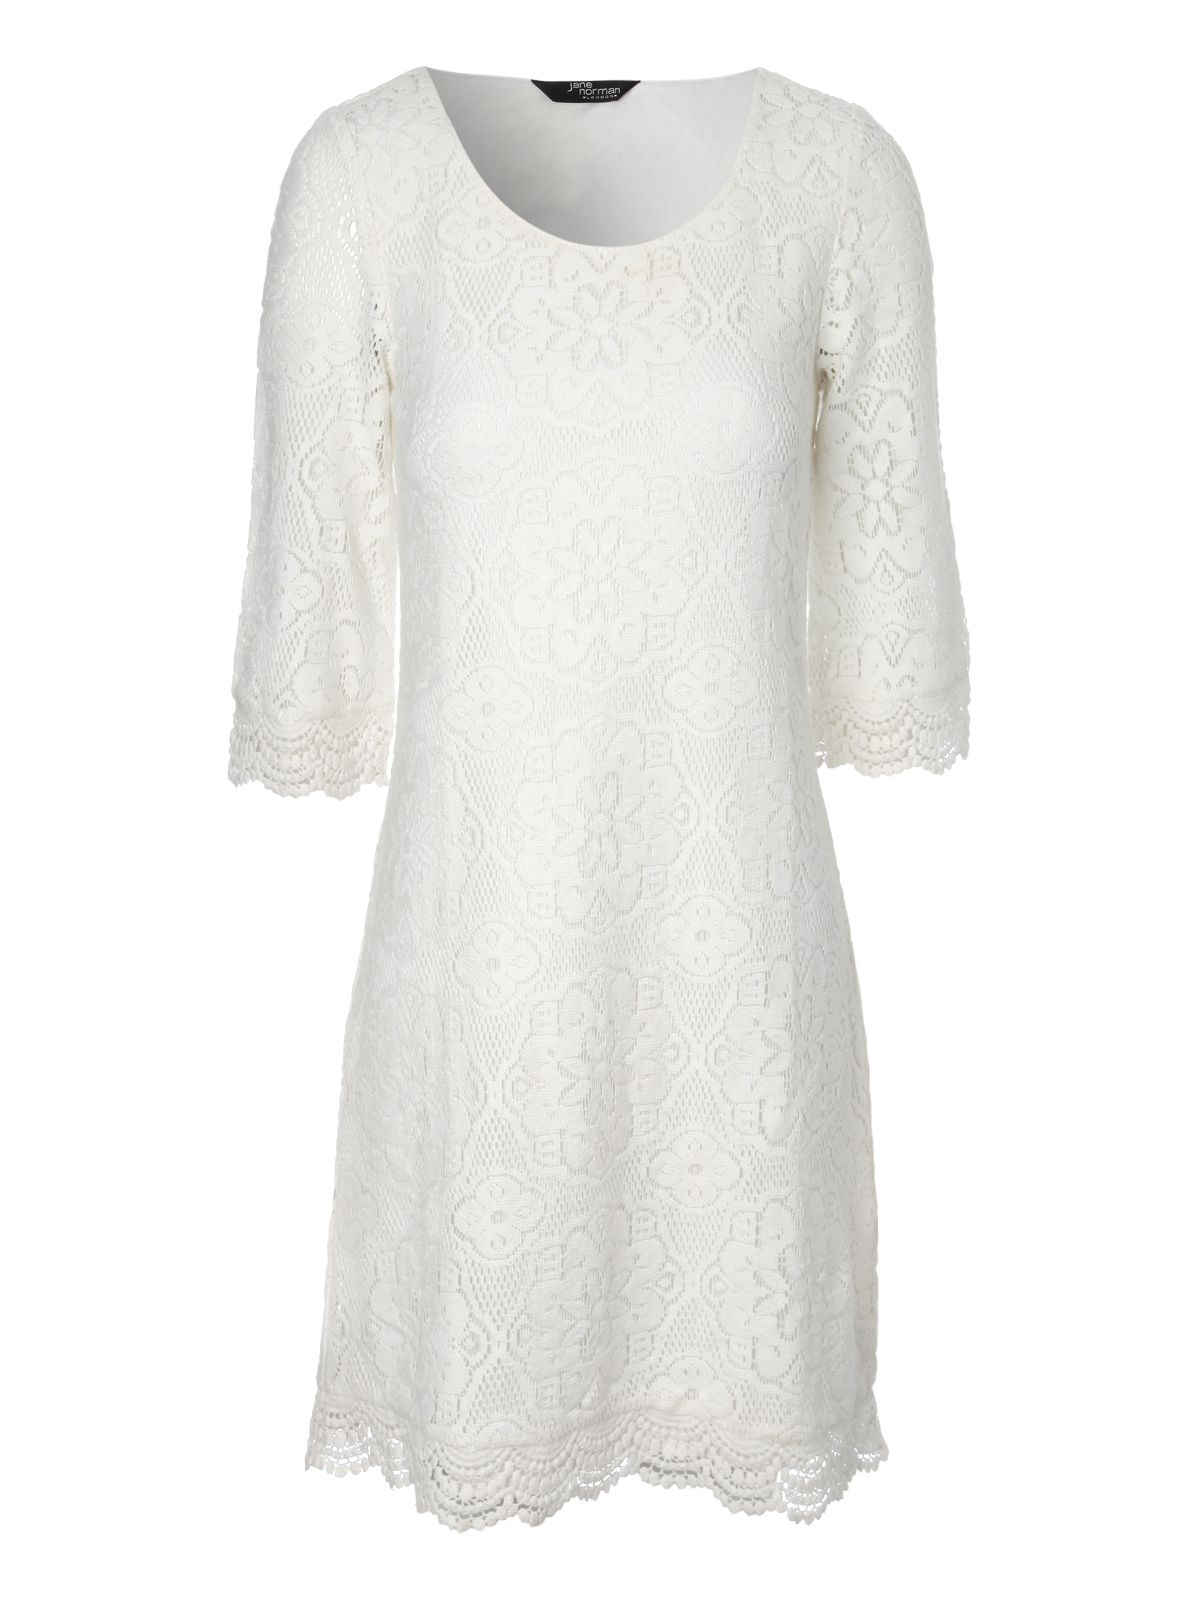 3/4 sleeve crochet shift dress